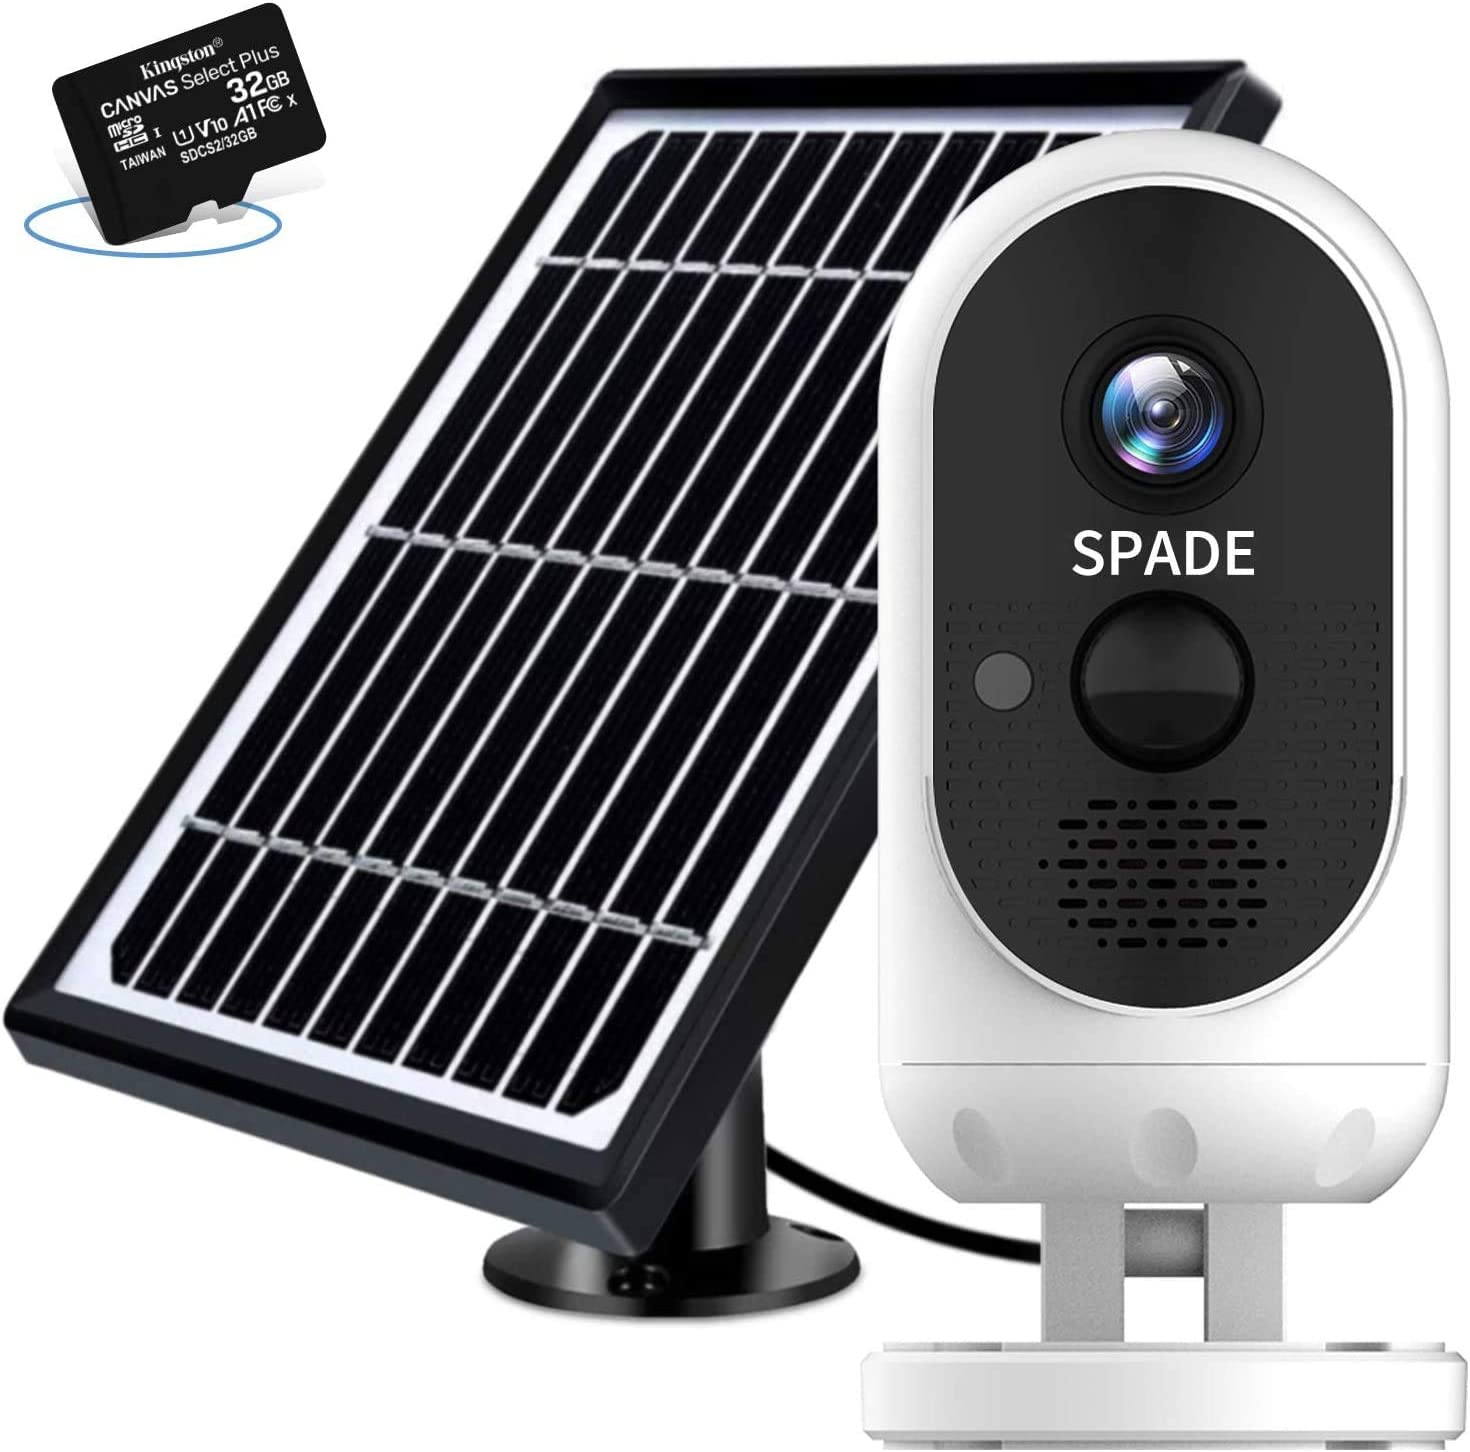 Outdoor Security Camera Wireless,SPADE Solar Powered Camera 7600mAh Battery with FHD 1080P, WiFi Home Surveillance Cam with Night Vision, Instant Alerts, Motion Detection,Two-Way Audio with 32GB Card